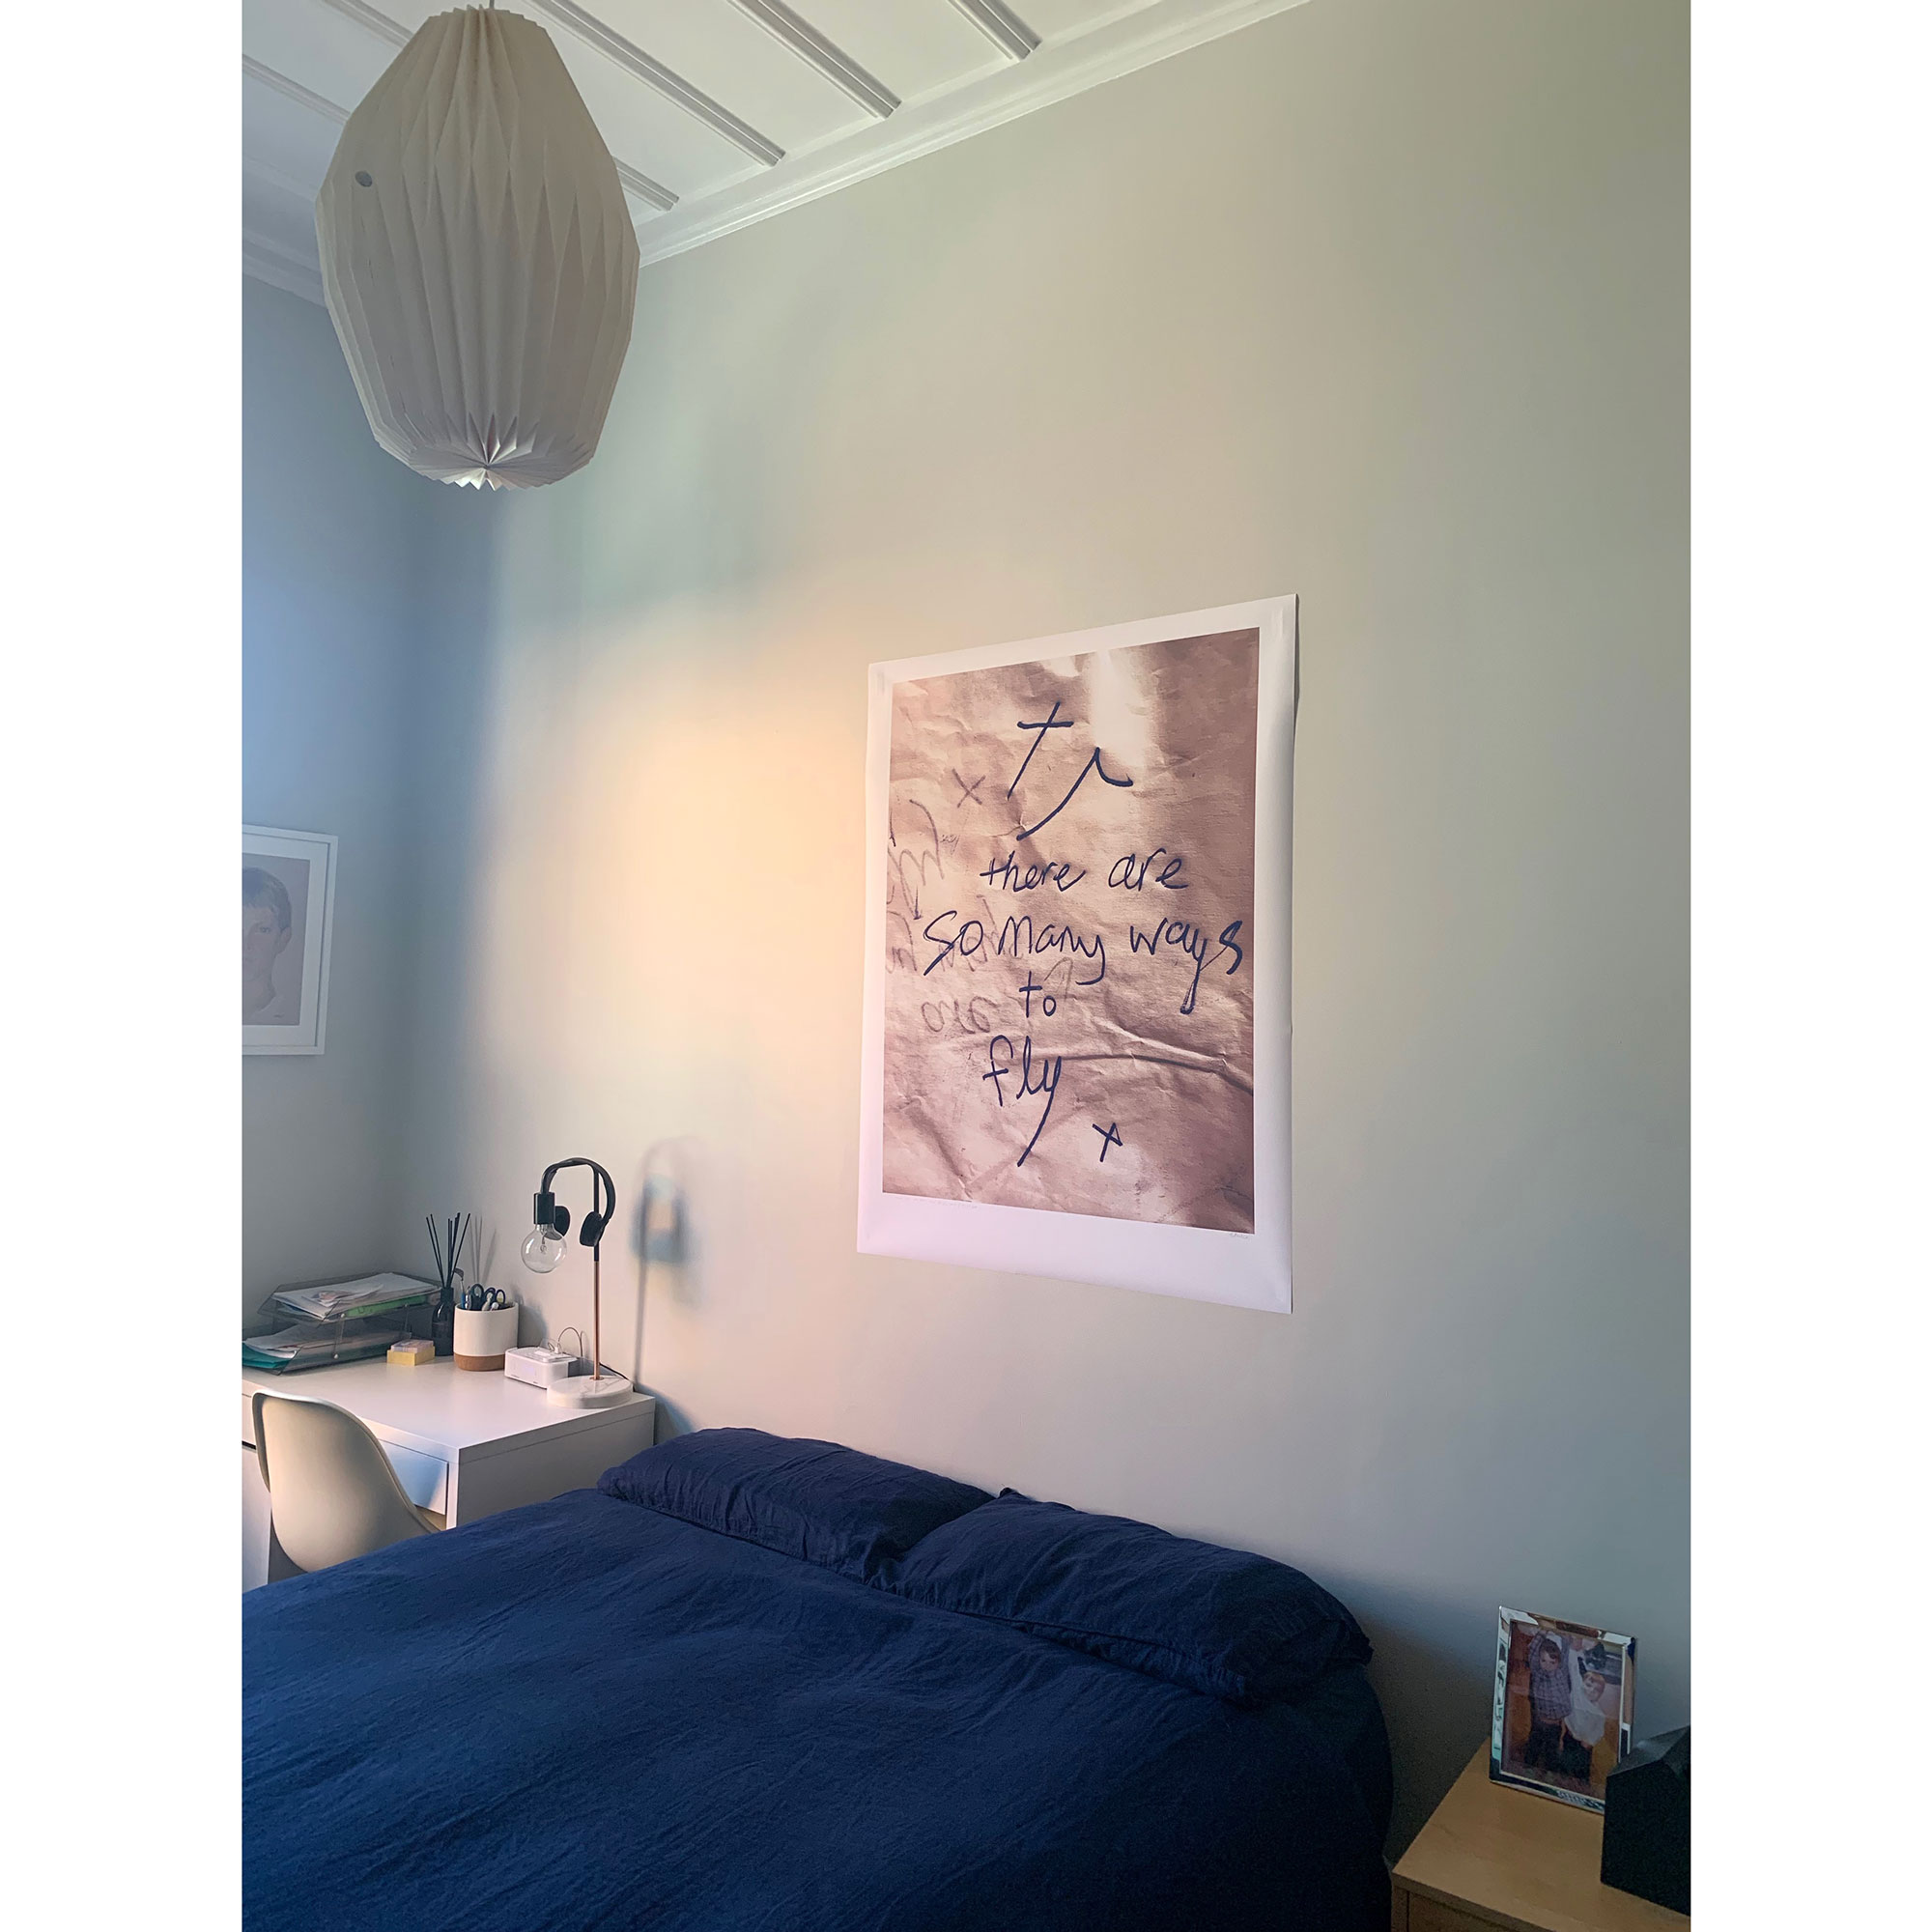 There are so many ways to fly, 2019  in Jonty's bedroom.